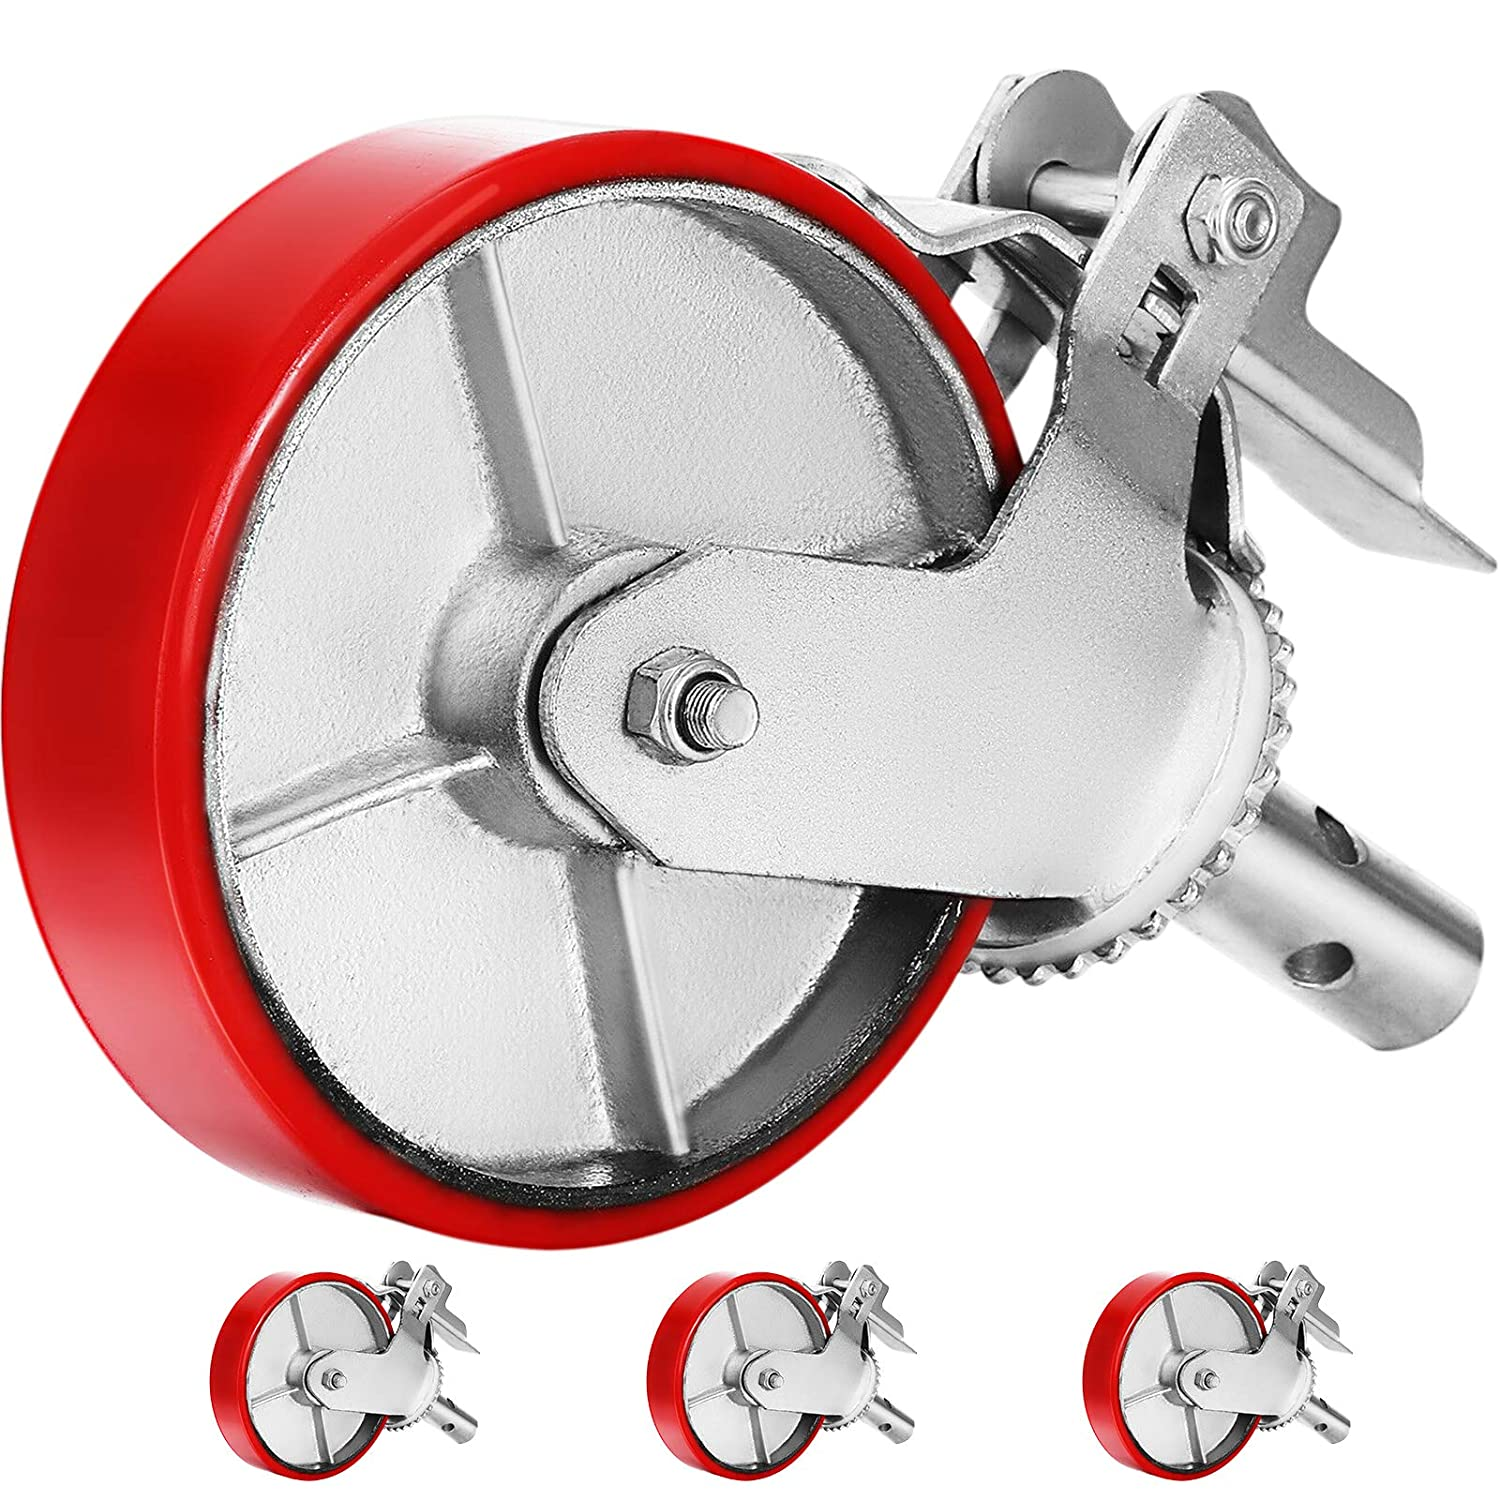 OrangeA Scaffold Casters Shelves - Scaffolding Wheels Heavy Duty Red Polyurethane Set of 4 Workbench 8 Replacement for Scaffold Stem Swivel Casters with Brake 4400 Lbs Per Set